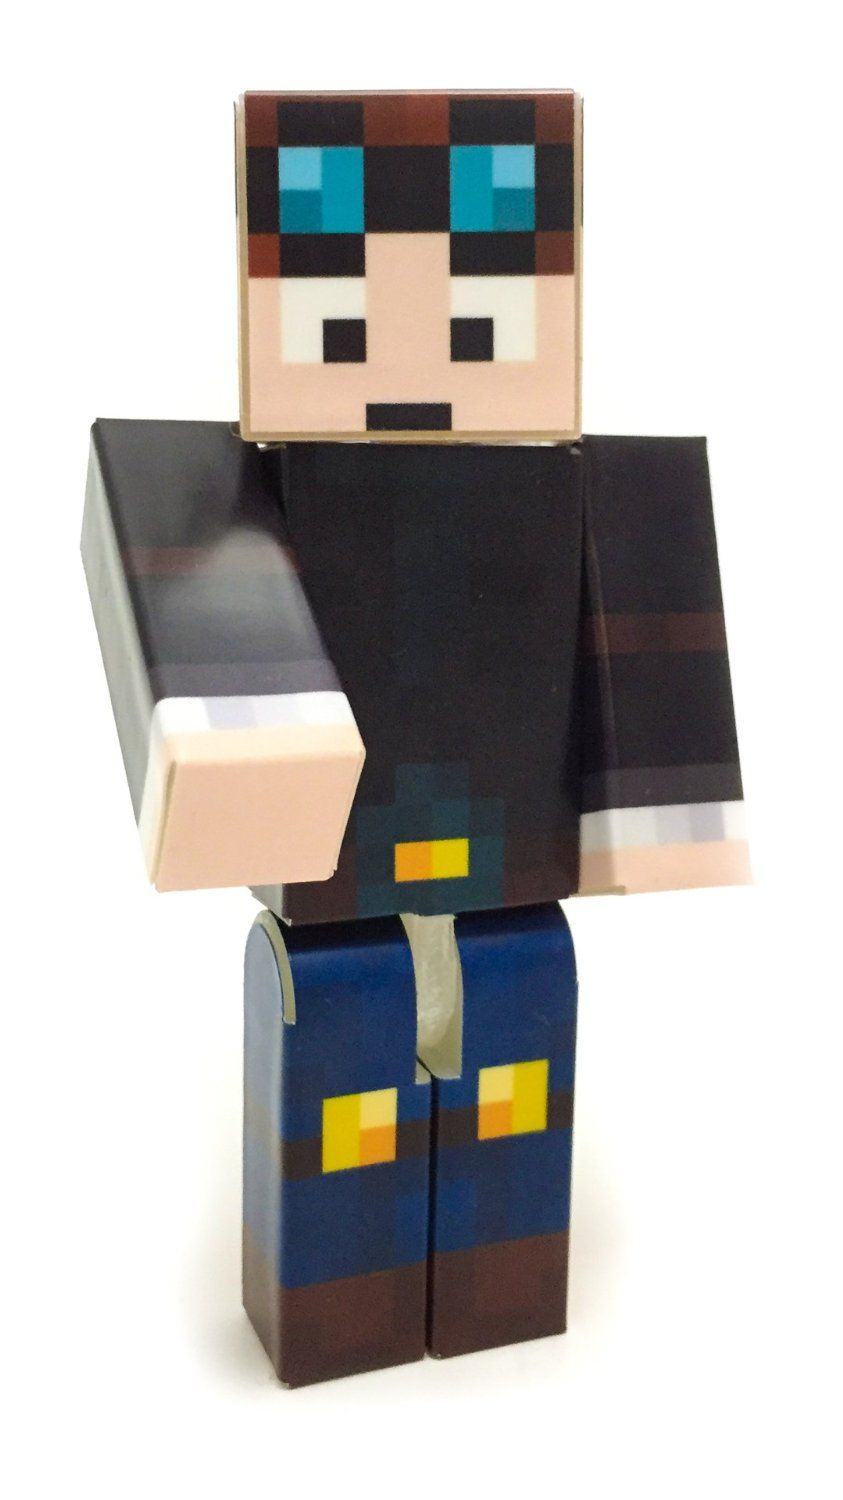 67749234331a Amazon.com  EnderToys - DanTDM - The Diamond Minecart - a plastic toy  Toys    Games